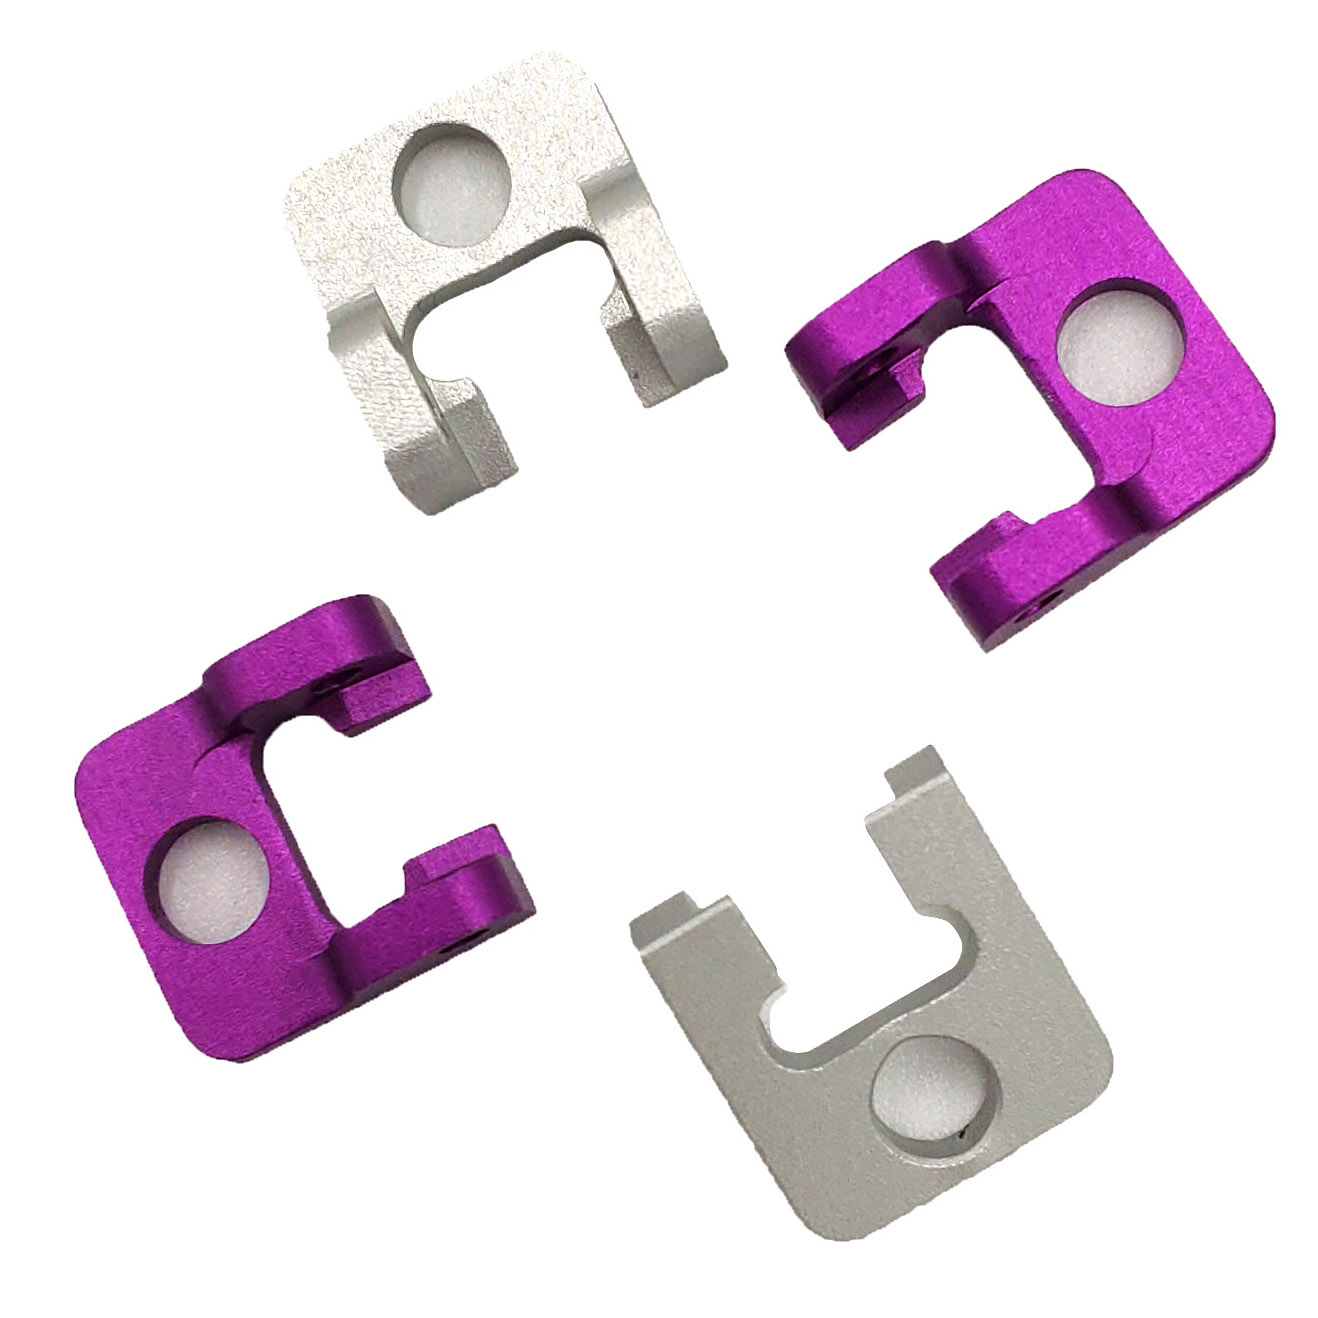 CNC Milled Small Parts